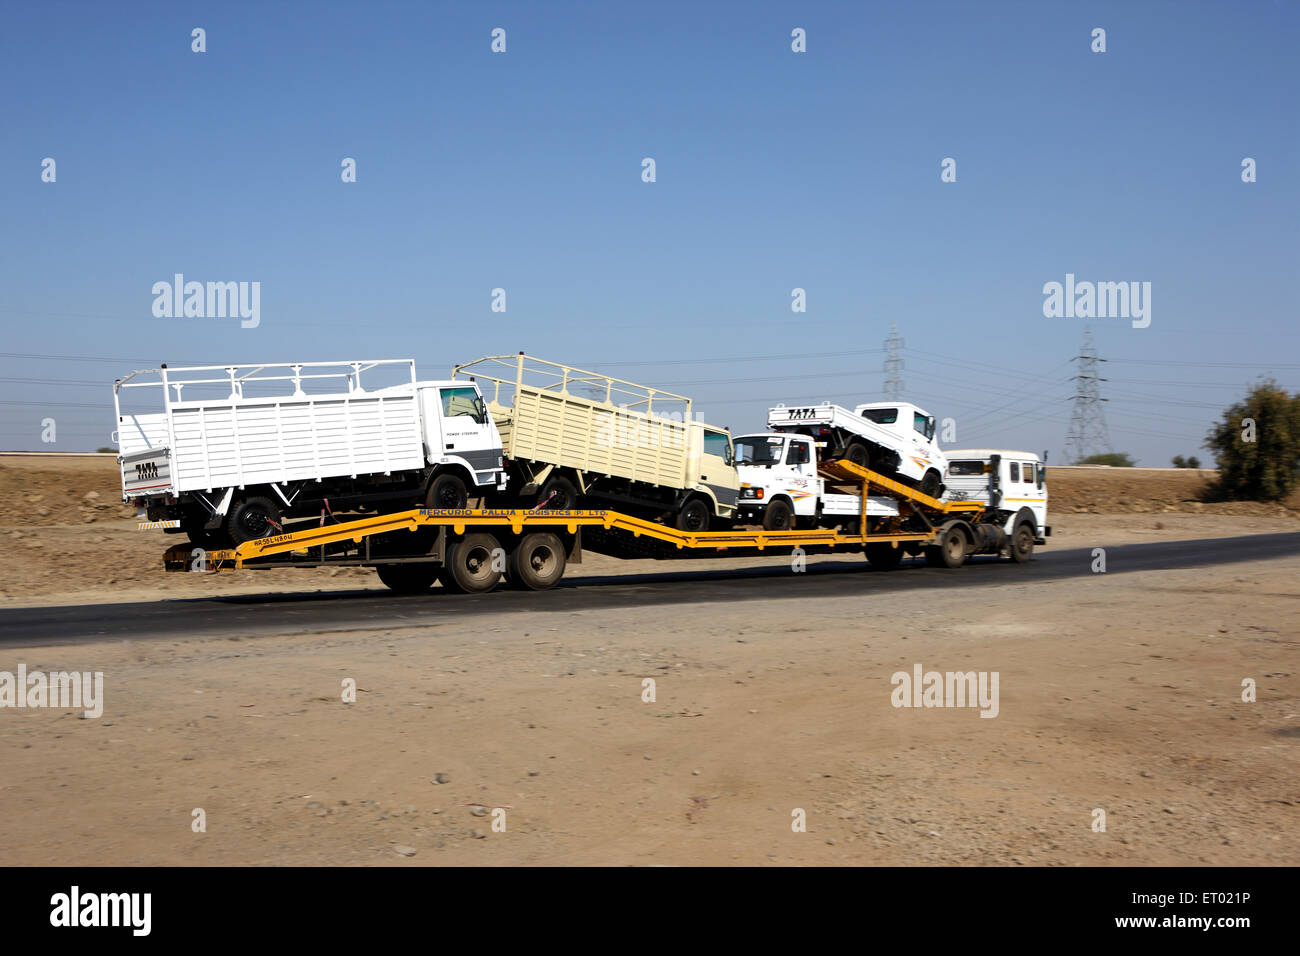 Le transport d'automobiles par les transporteurs routiers sur l'autoroute Photo Stock